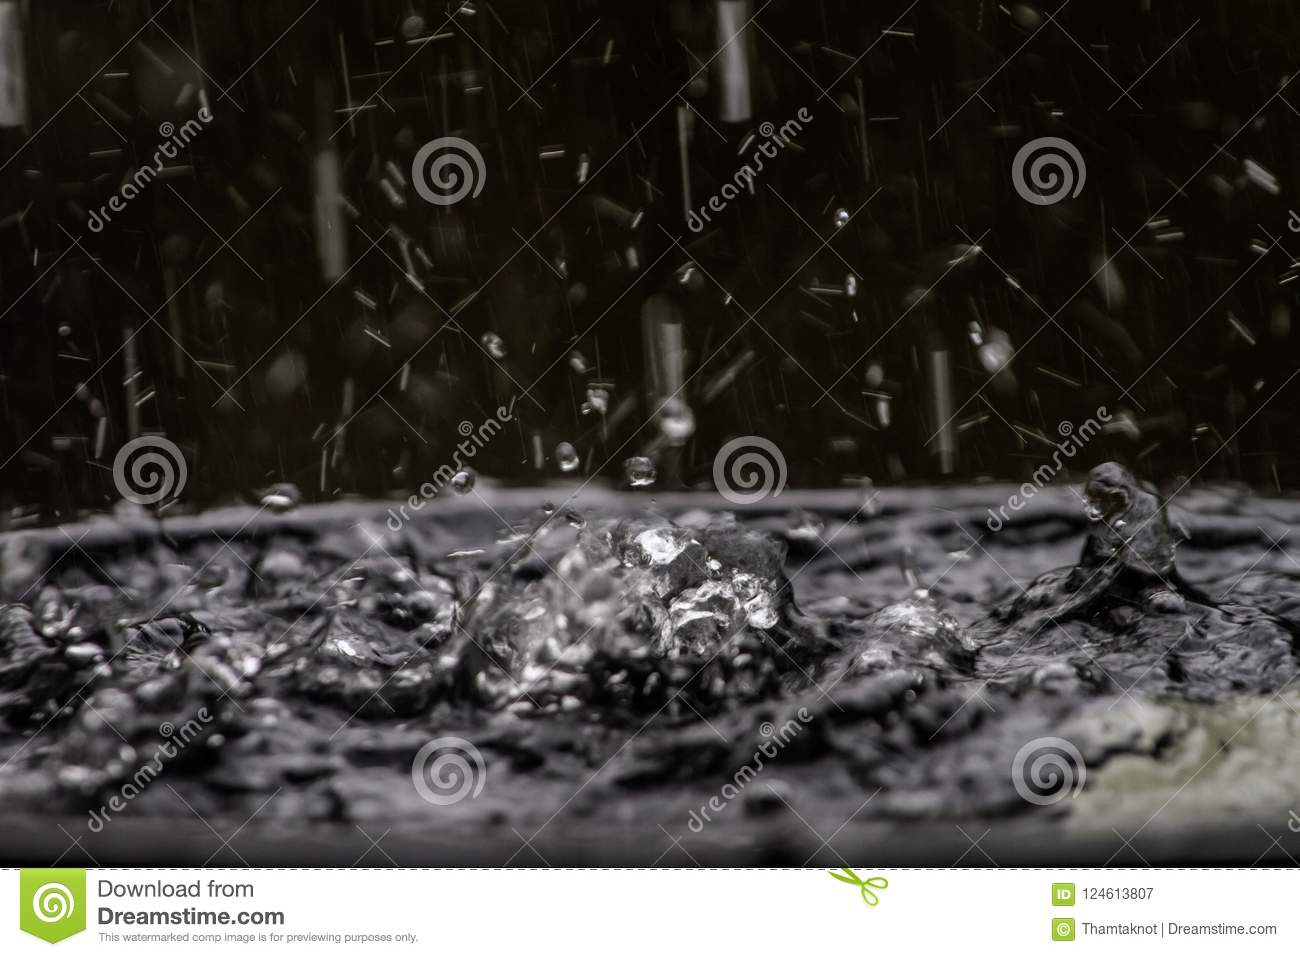 Diffusion of water from the rain make shape unexplainable. But the beauty of nature.